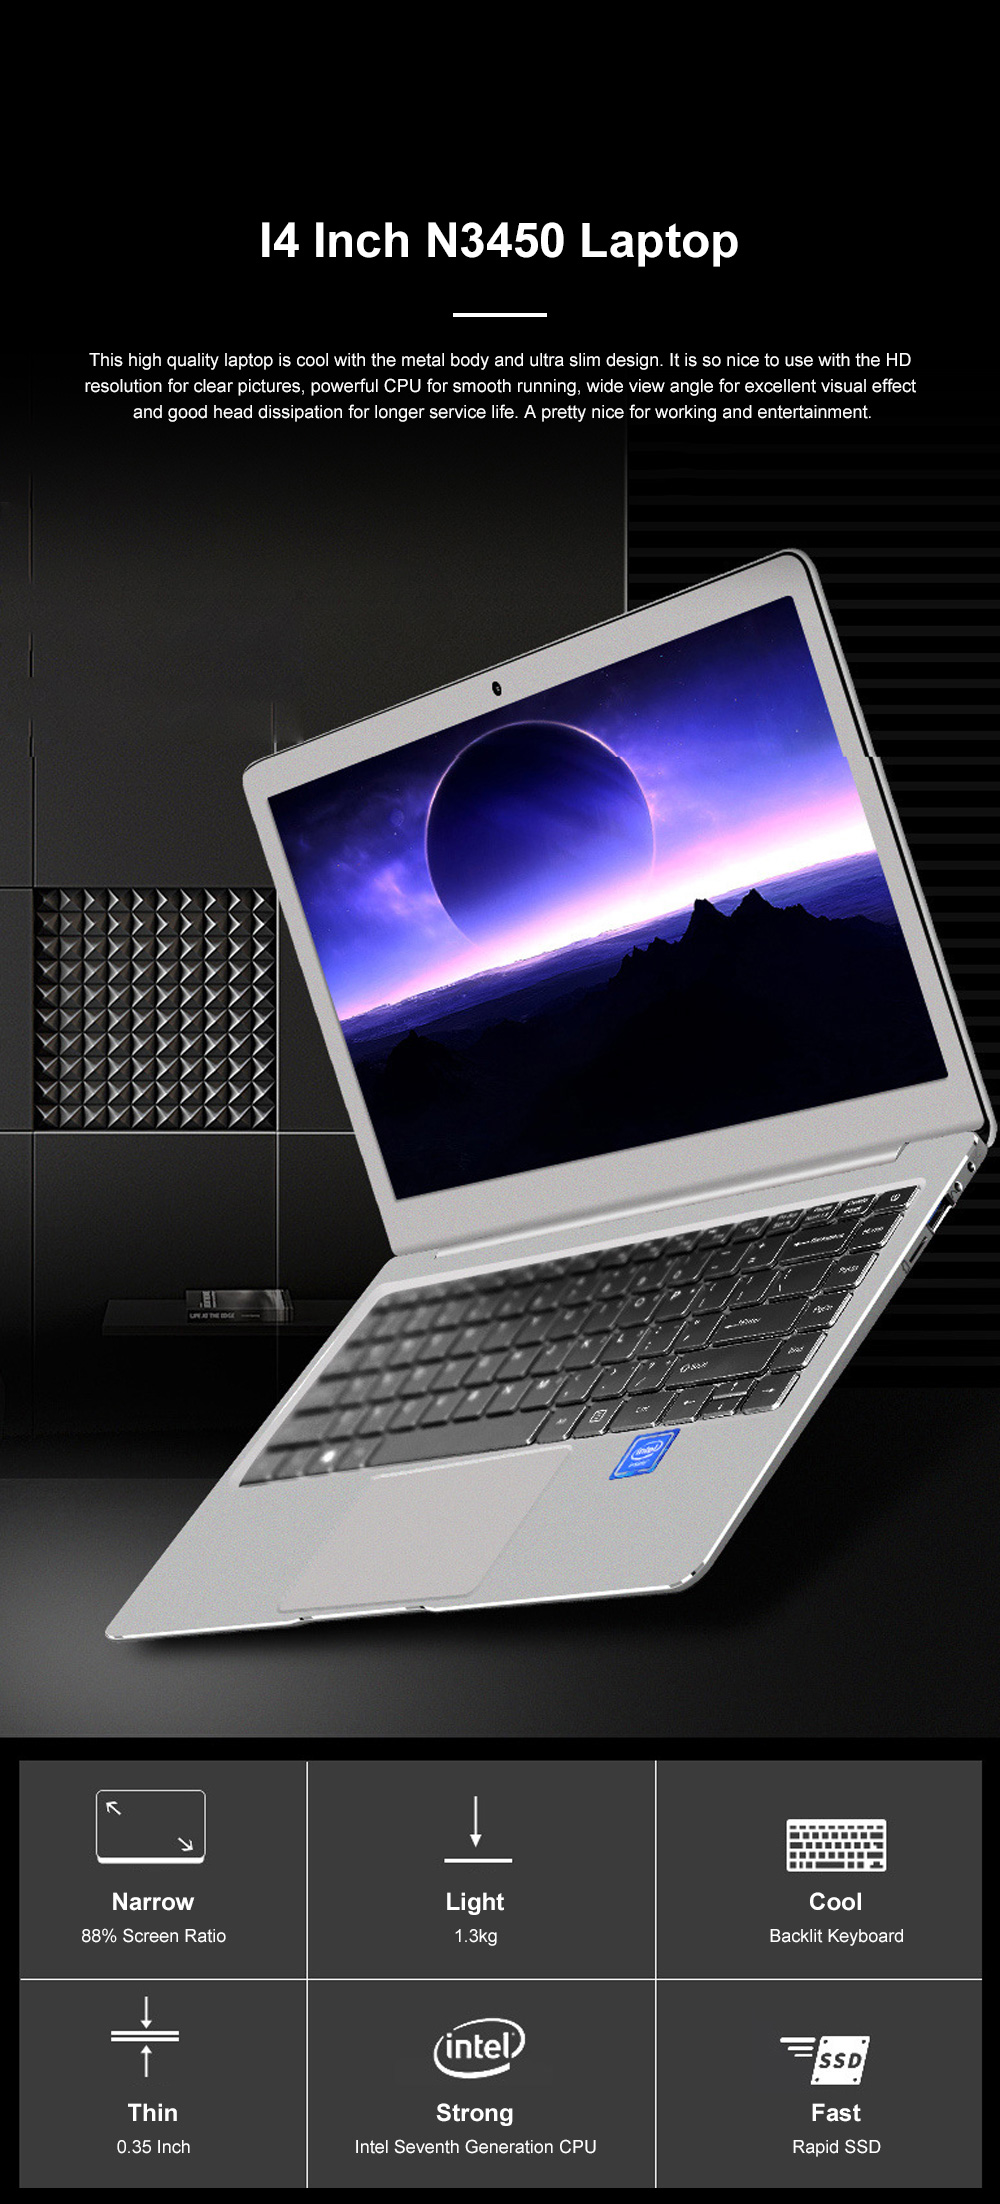 I4 Inch N3450 Laptop Intel Quad-Core ProBook with 1920*1080 HD Resolution Ultra Slim Notebook with Wide View Angle 0